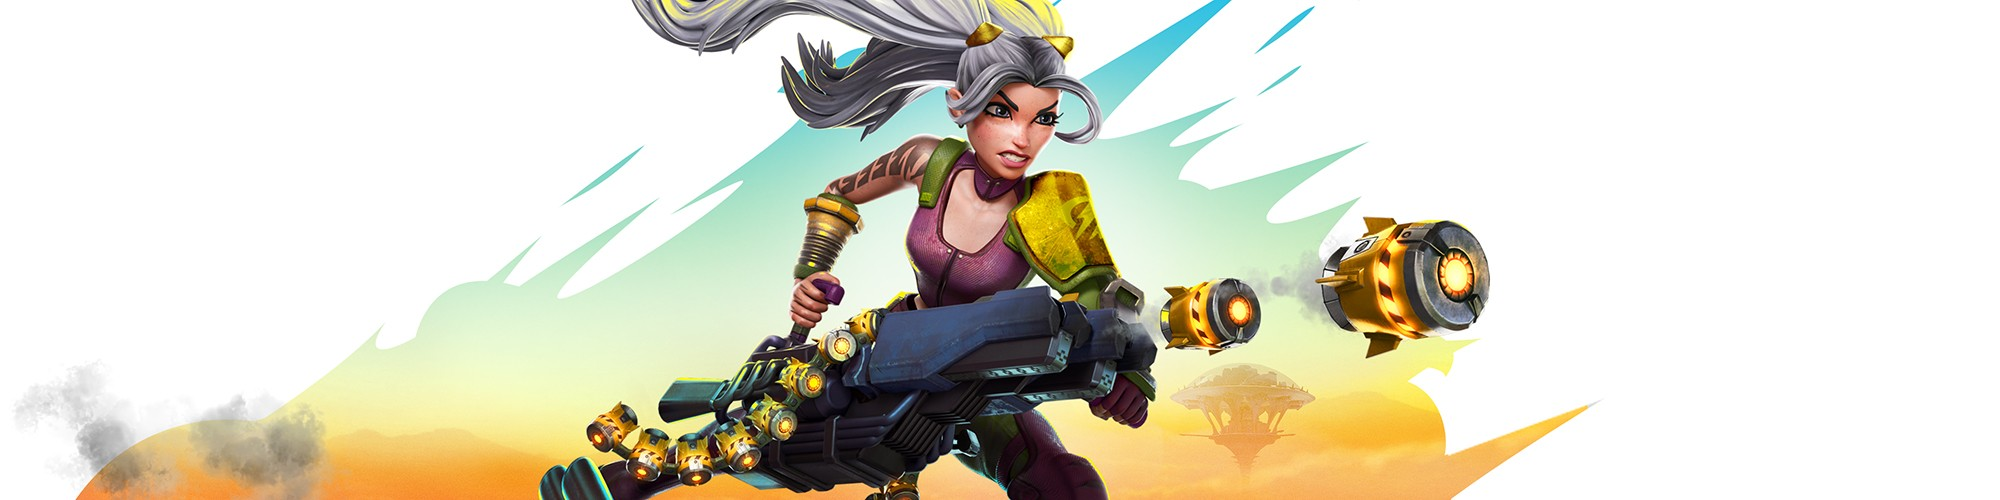 Rocket Arena technical specifications for PC